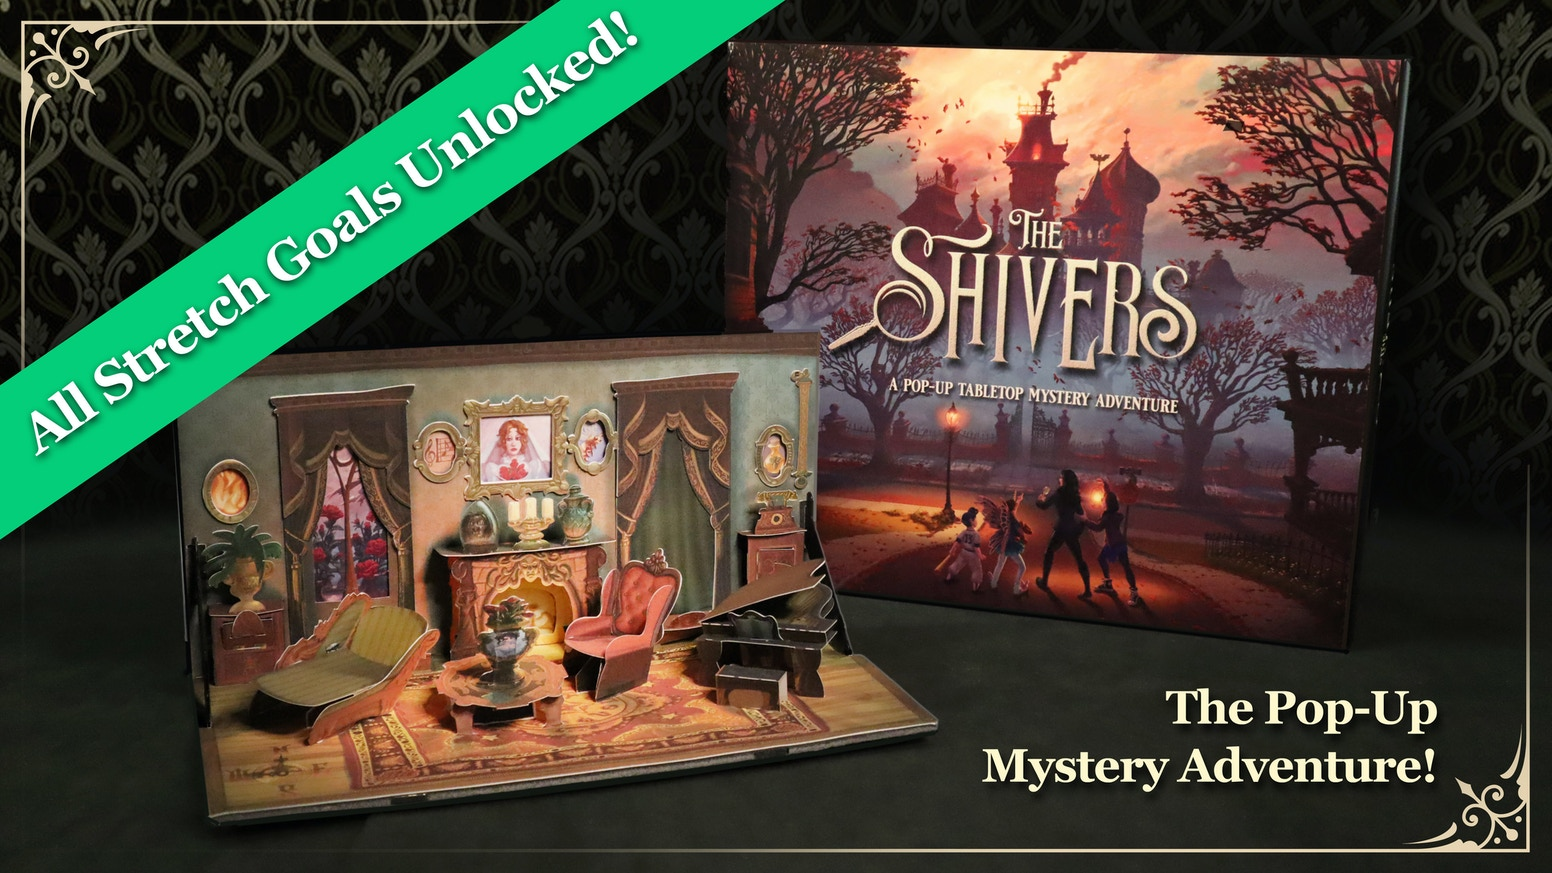 Work together in this mystery pop-up Role-Playing Game for 2-5 players, exploring a spooky mansion filled with hidden secrets!